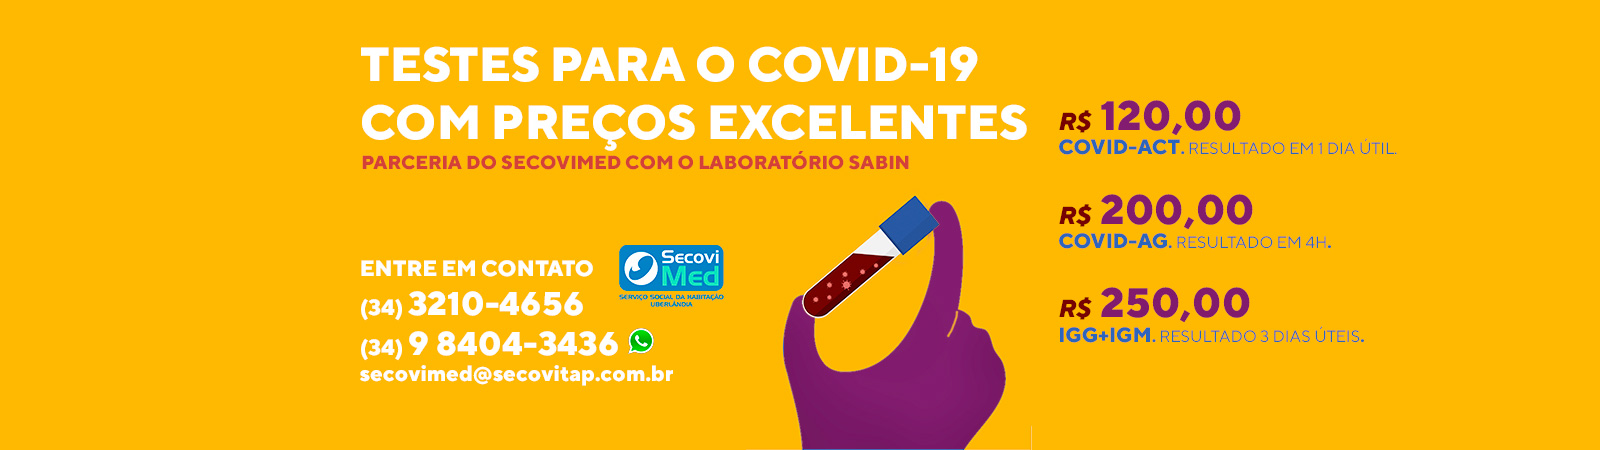 teste-covid-site-secovimed